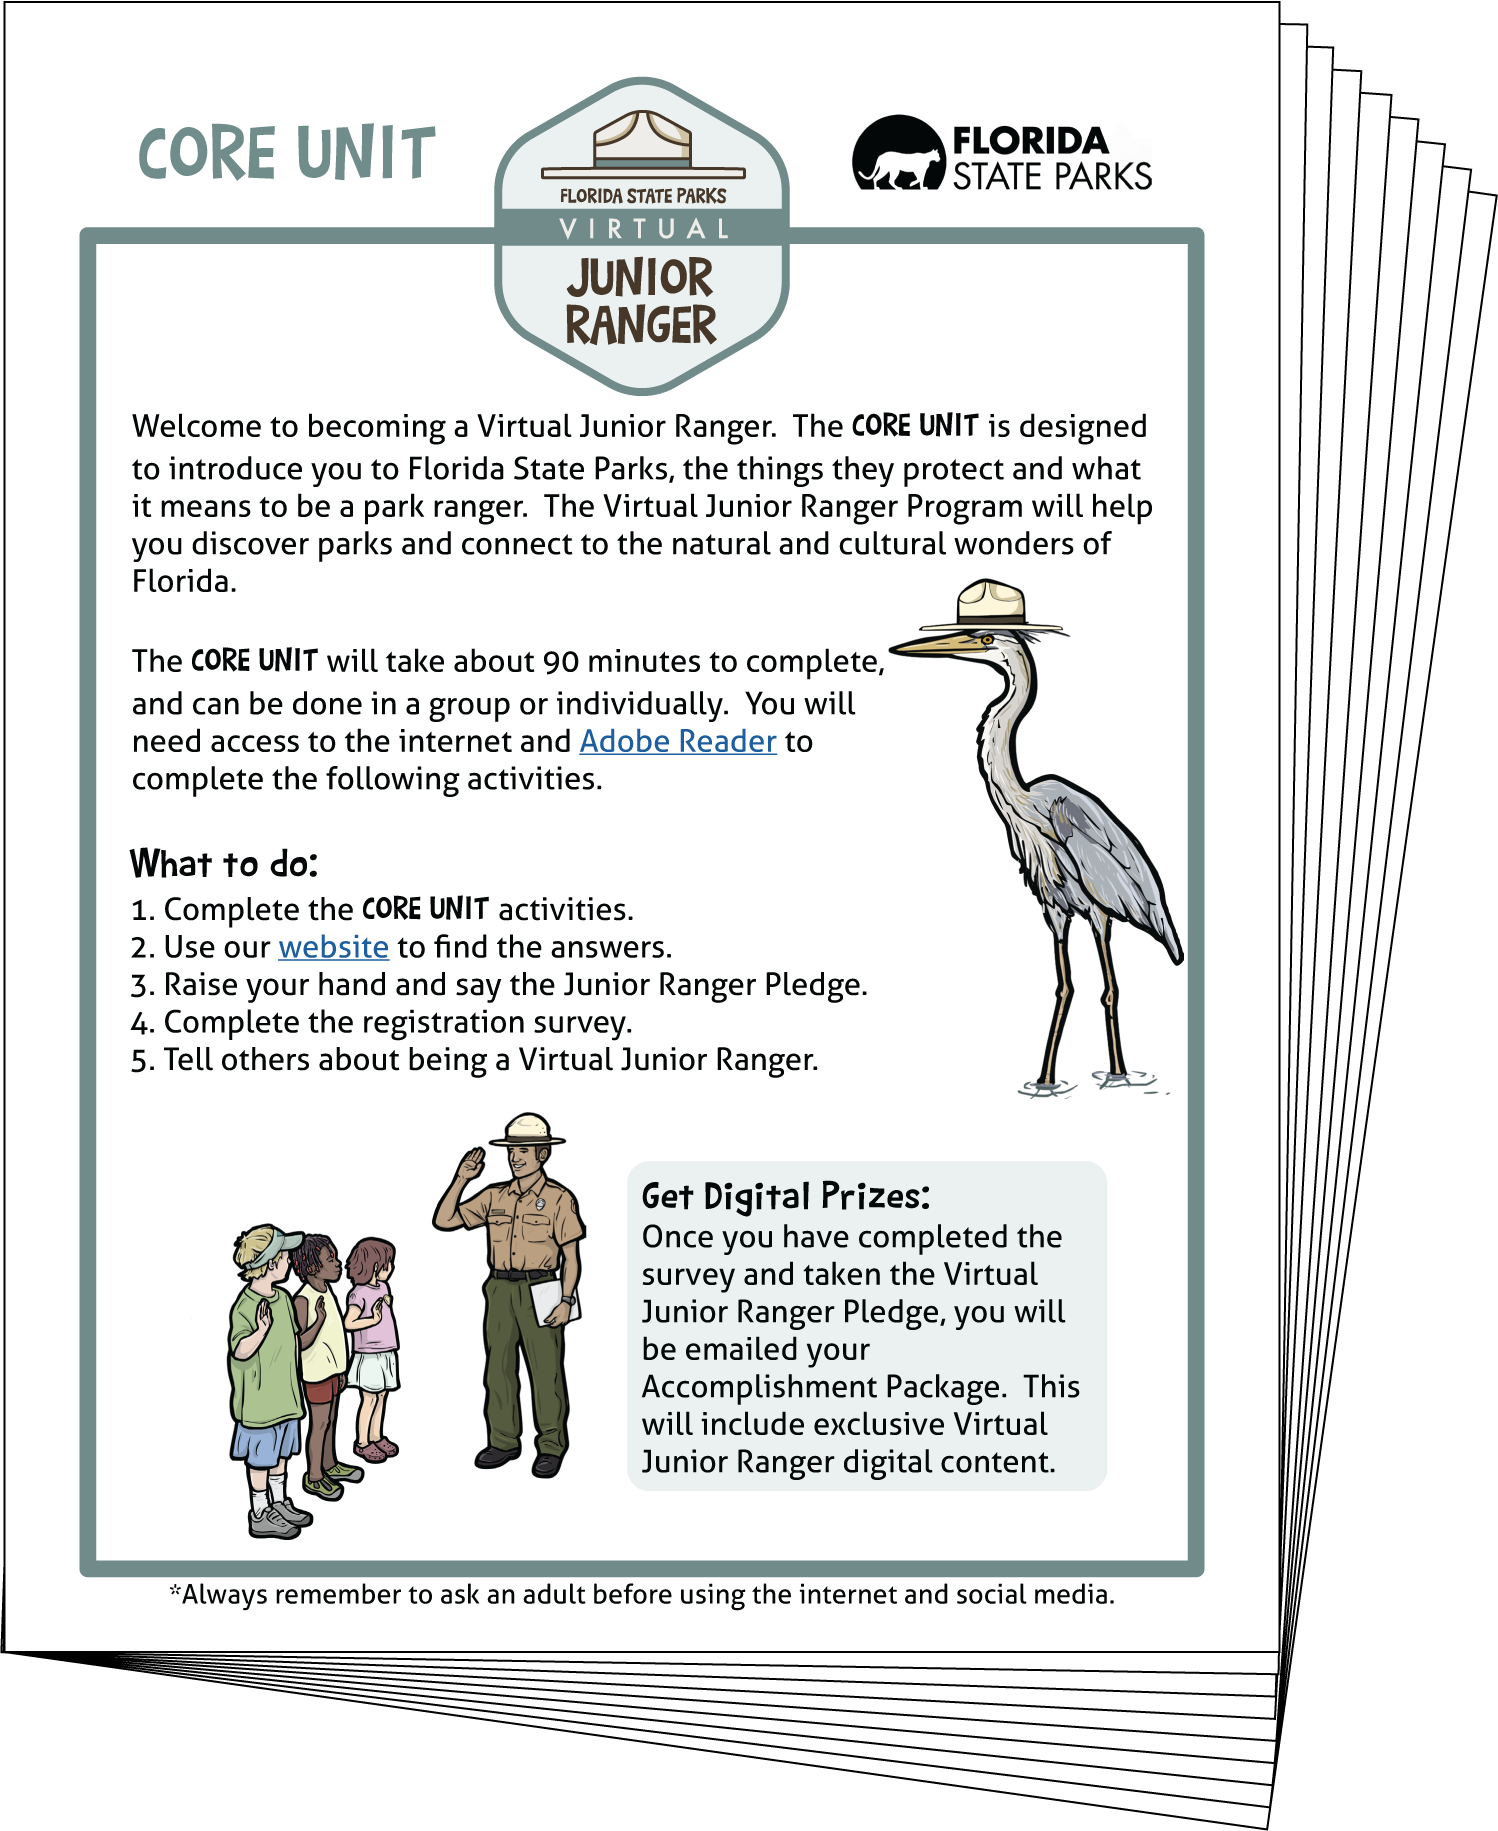 Virtual Junior Ranger: Core Unit